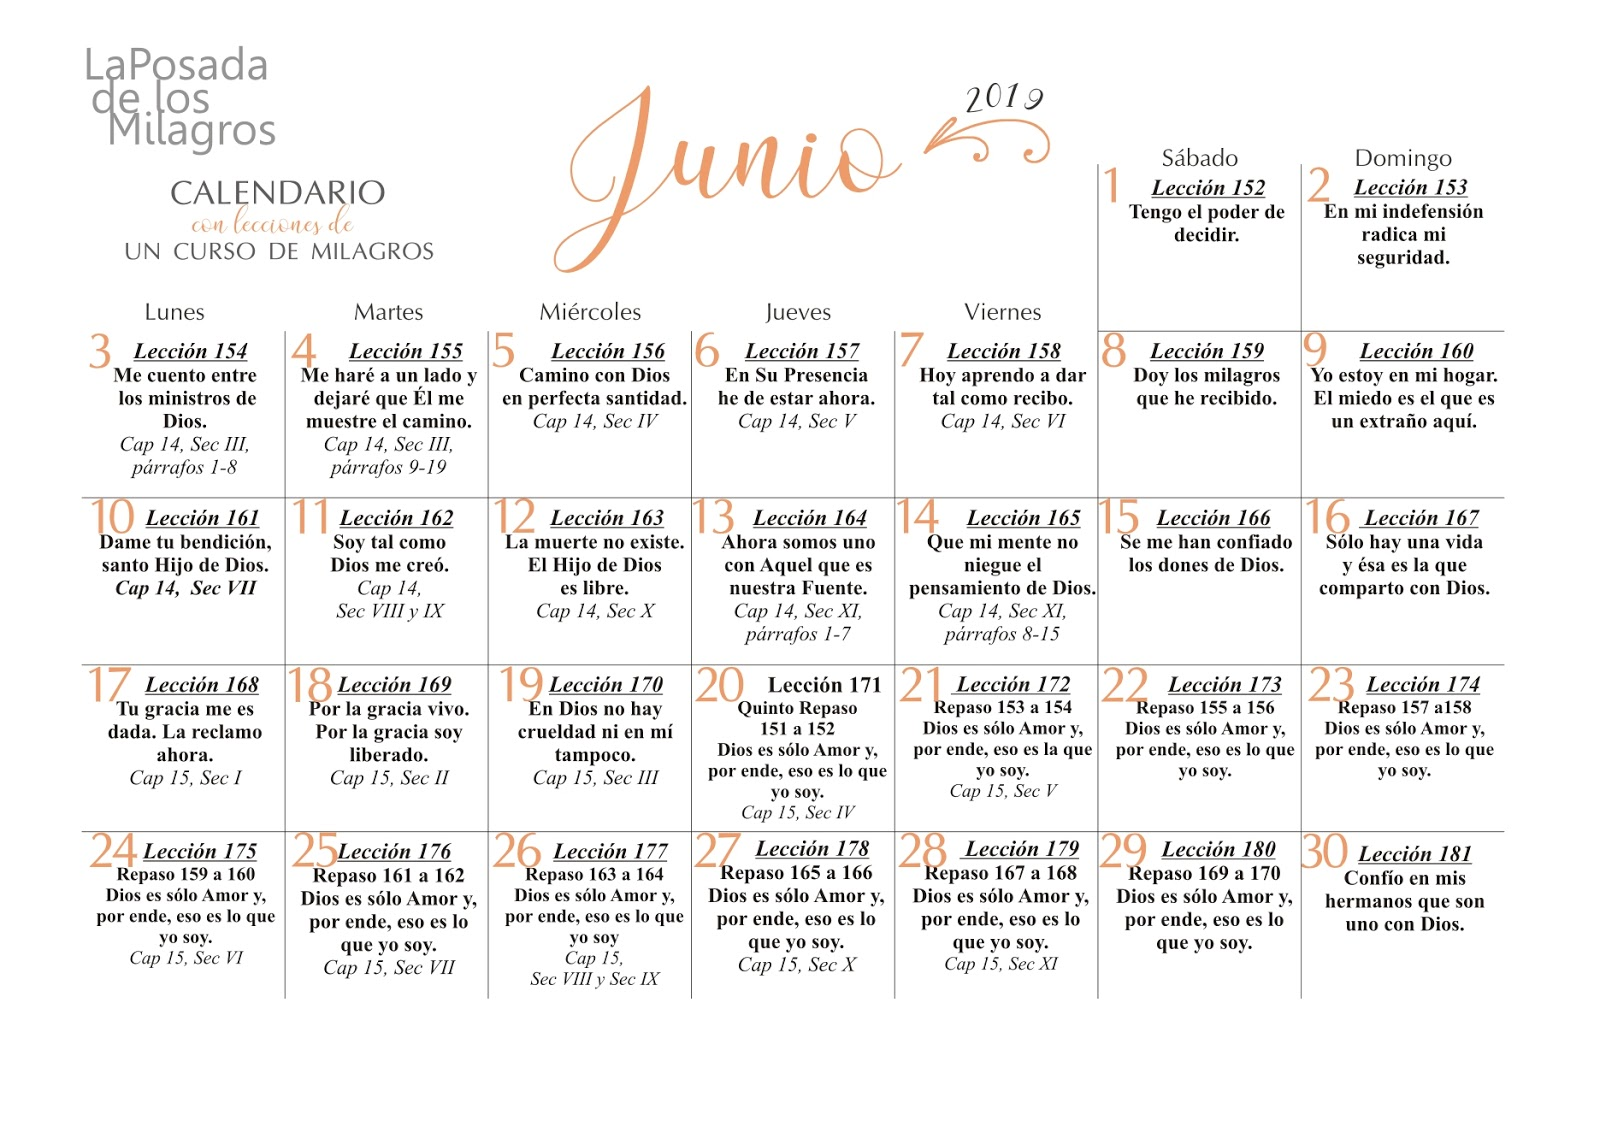 Junio 2019 Calendario.Un Curso De Milagros Calendario Junio 2019